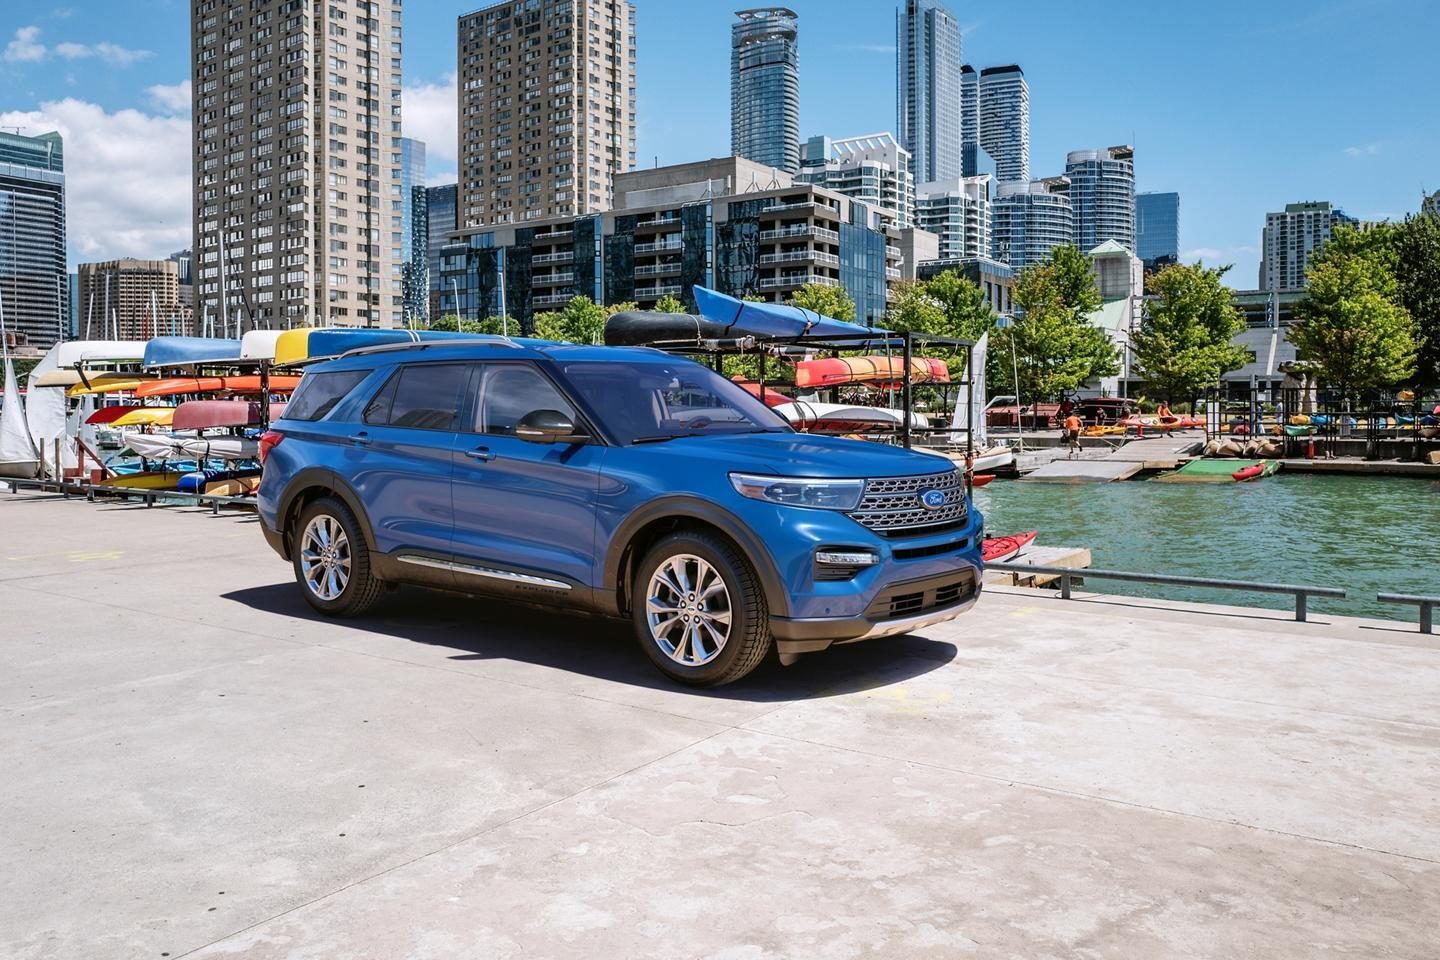 Ford & Lincoln 2020 Explorer image